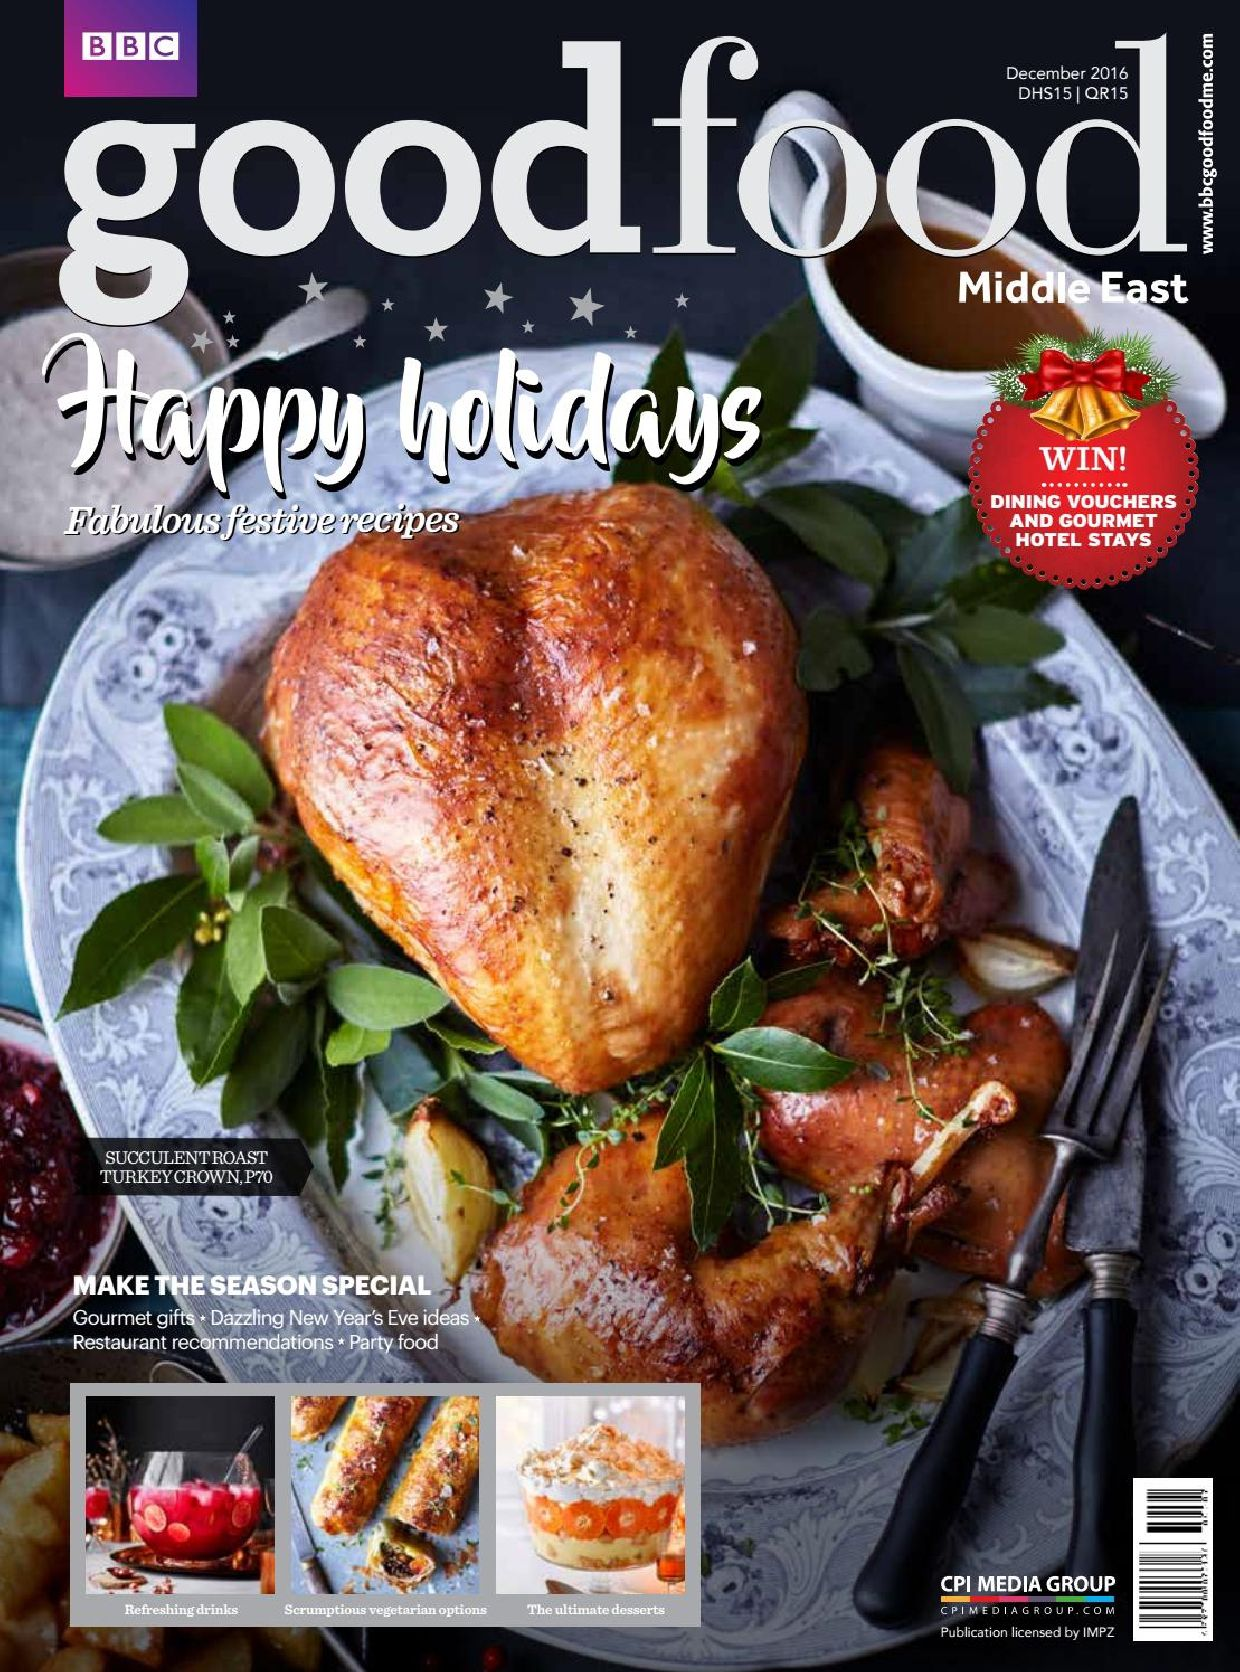 Bbc good food middle east 12 december 2016 food recipes magazine bbc good food middle east 12 december 2016 forumfinder Gallery